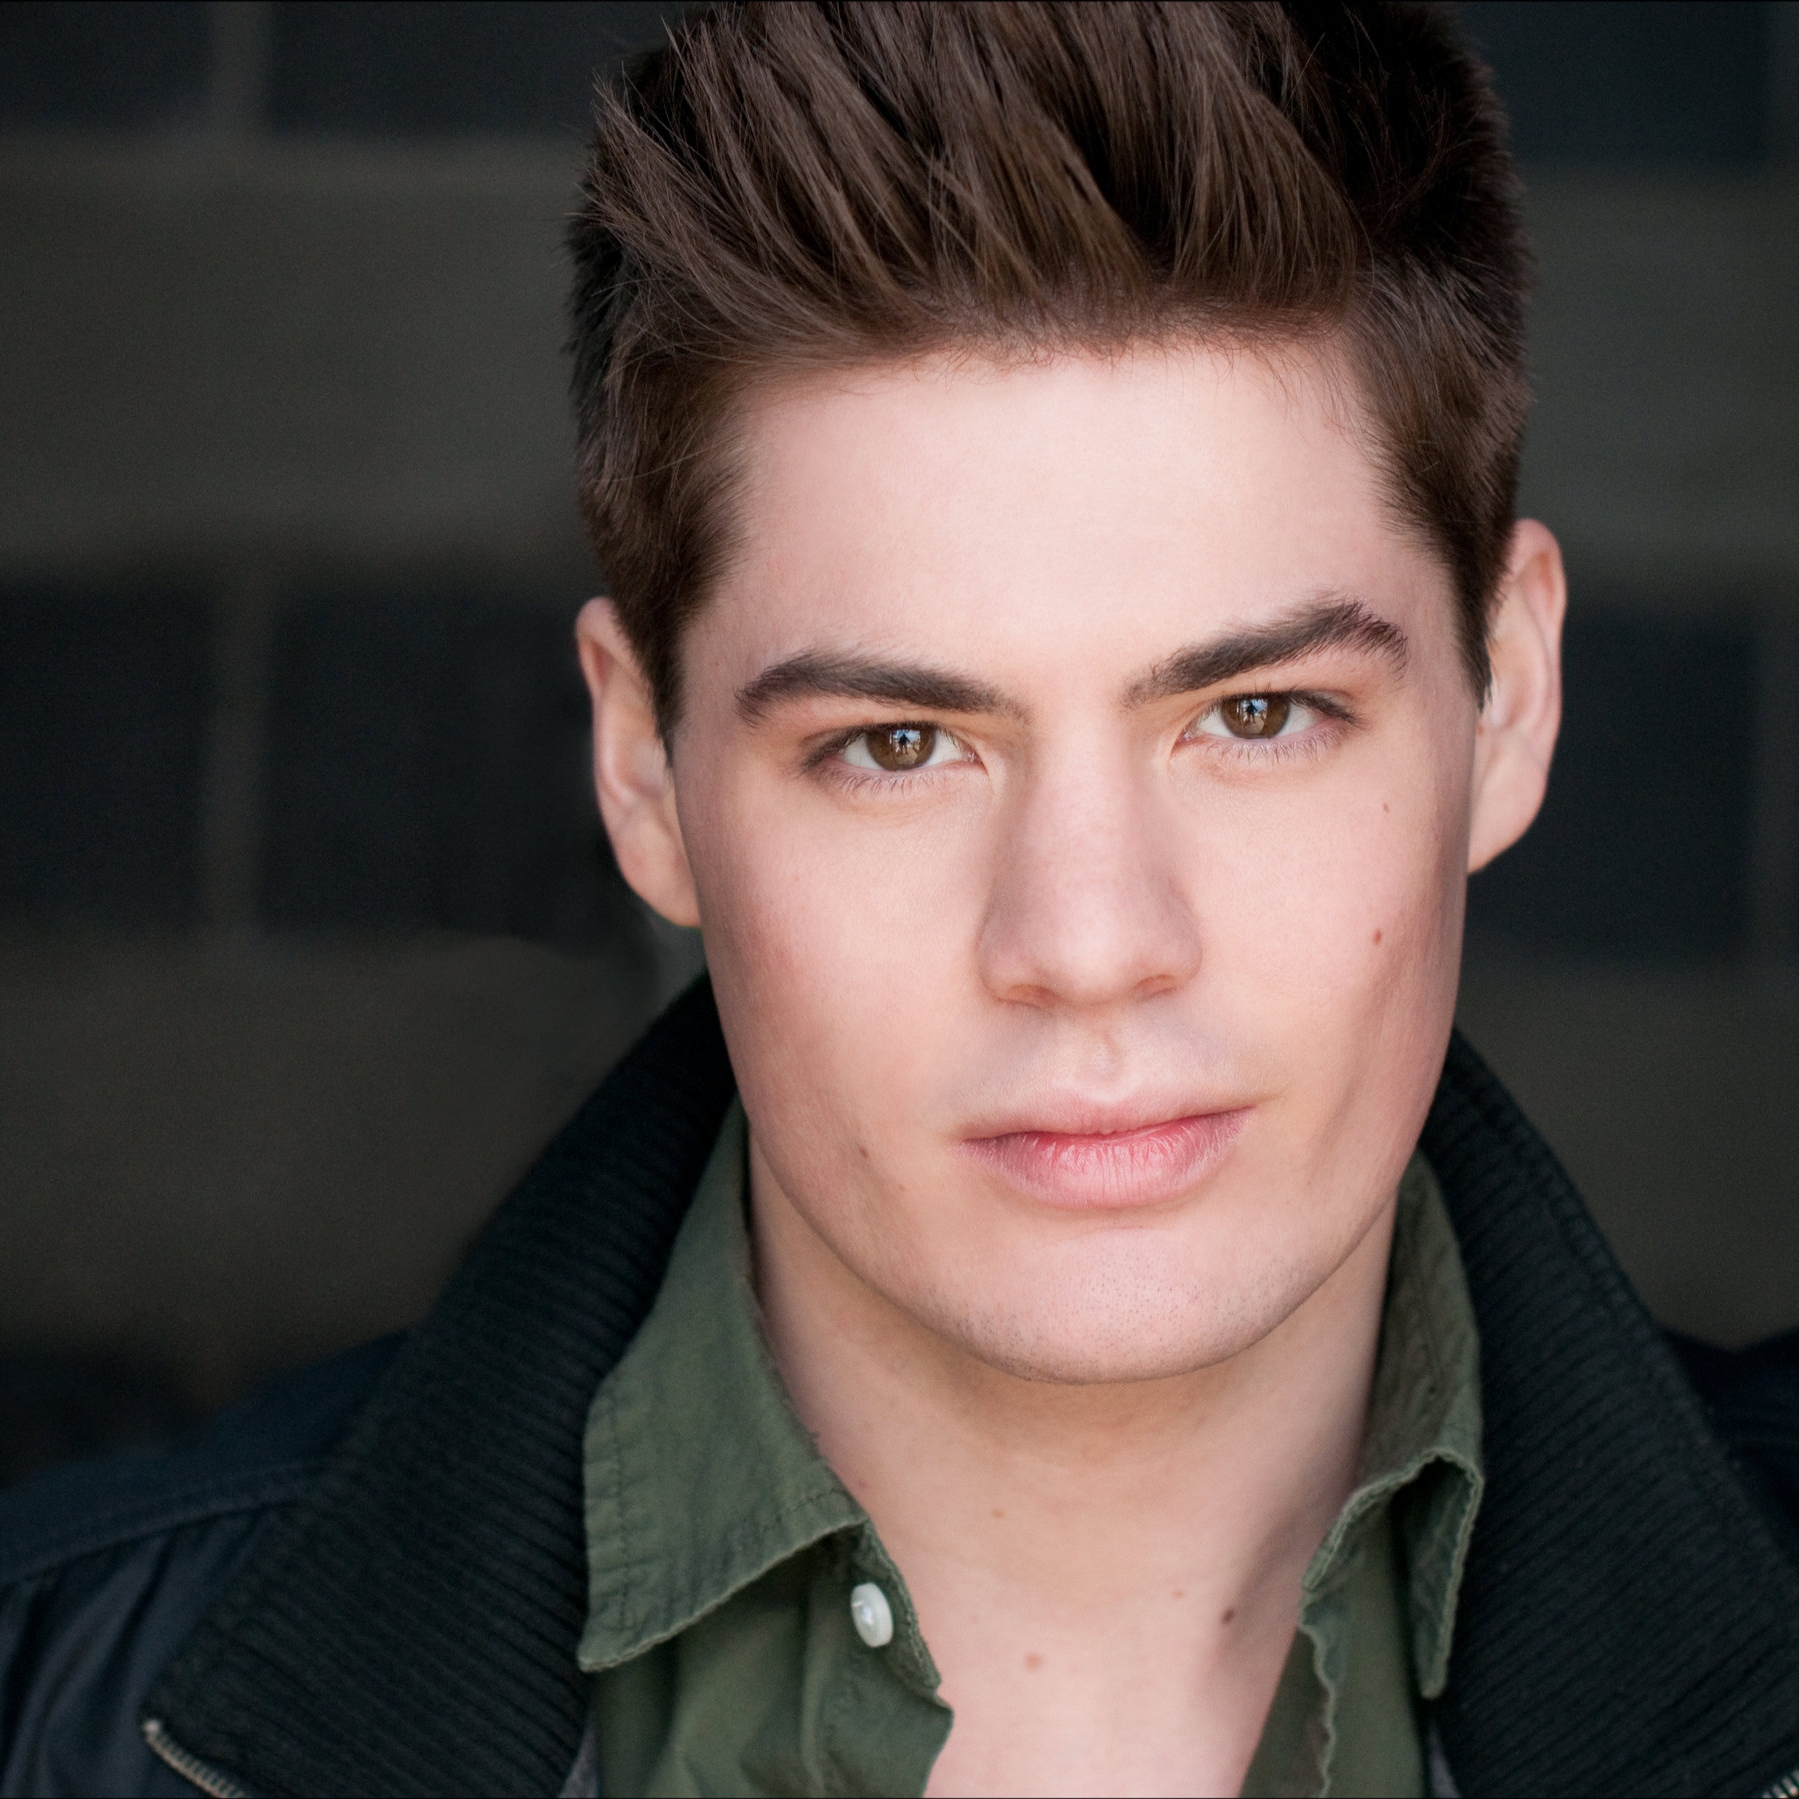 SAWYER SMITH*  ( Fastrada)  is excited to make their Venus debut! Mercury Theater Chicago credits include:  The Bardy Bunch, The Producers, The Addams Family.  Selected credits include:  The Fly Honey Show 9  (The Inconvenience);  Rock of Ages  (Drury Lane Theater);  First Date  (Royal George);  Cats, Rent  and  A Chorus Line  (Paramount Theater); and  Pippin  (BoHo). Choreography credits include:  Heathers: The Musical  (Kokandy, Jeff Award);  Altar Boyz, The Full Monty ,  Titanic ,  The 25th Annual Putnam County Spelling Bee  (Griffin Theatre) and  Sweet Charity  (Timber Lake Playhouse).